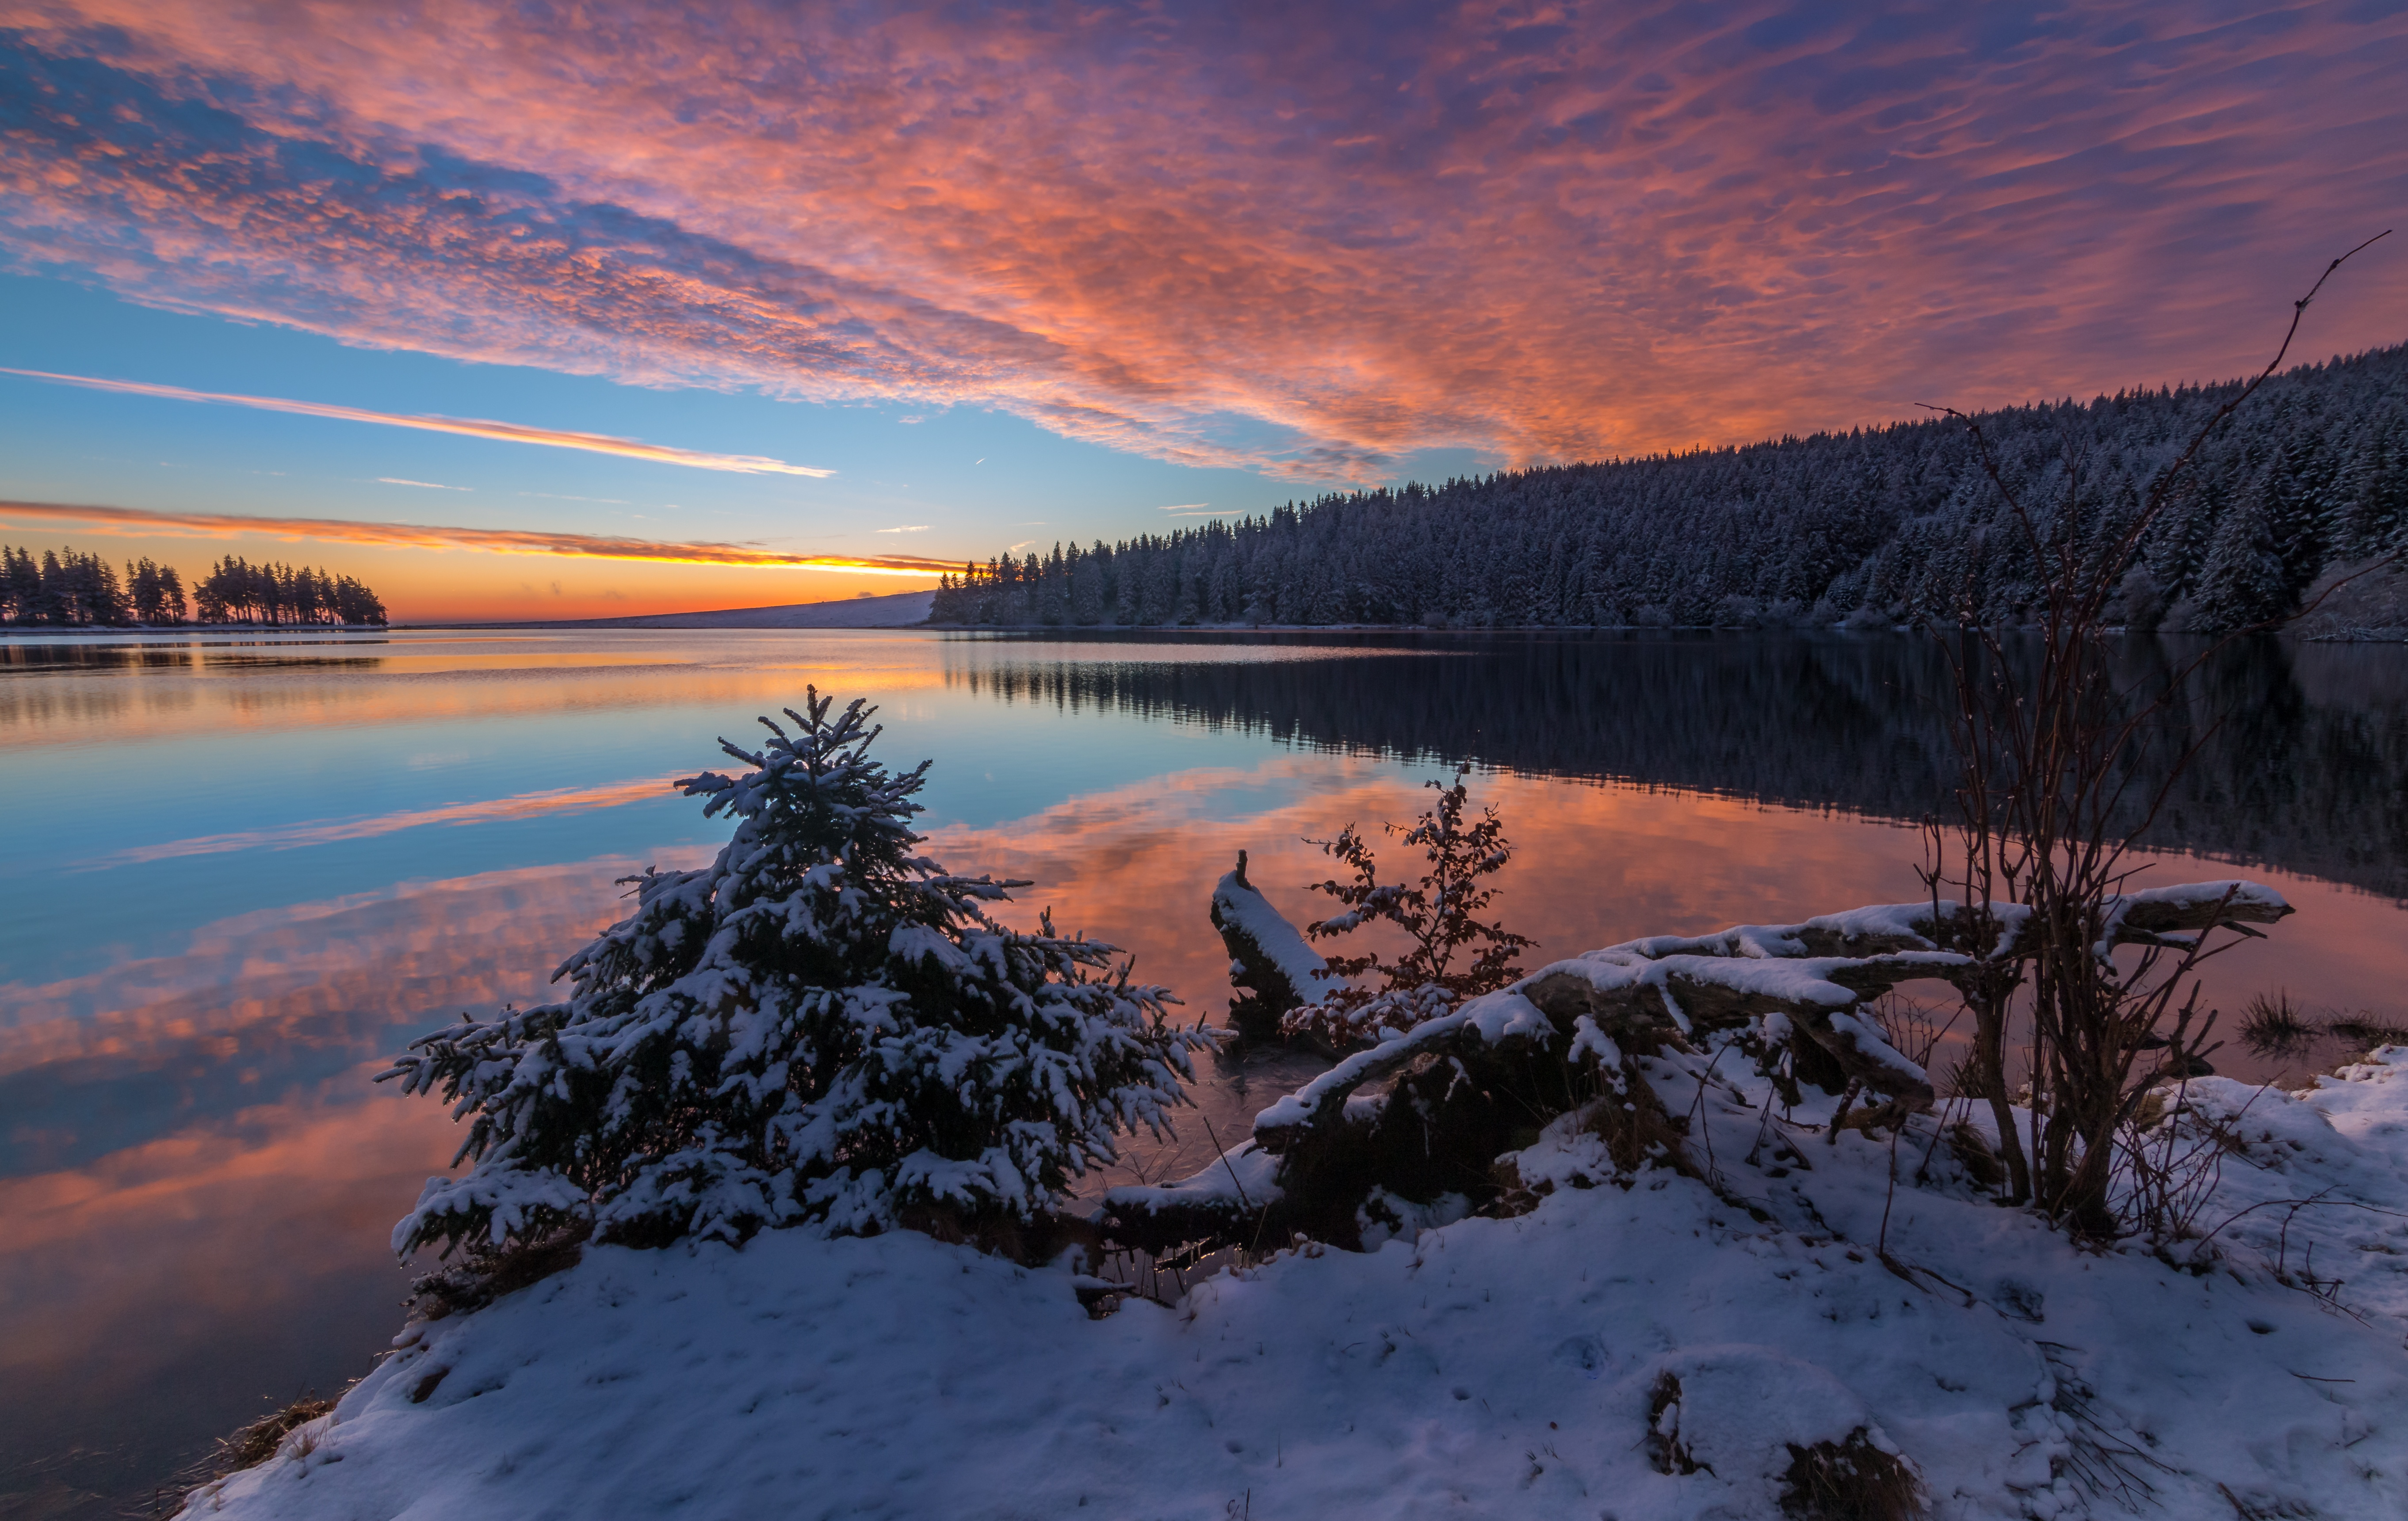 Wallpaper Lake in the snow at sunset